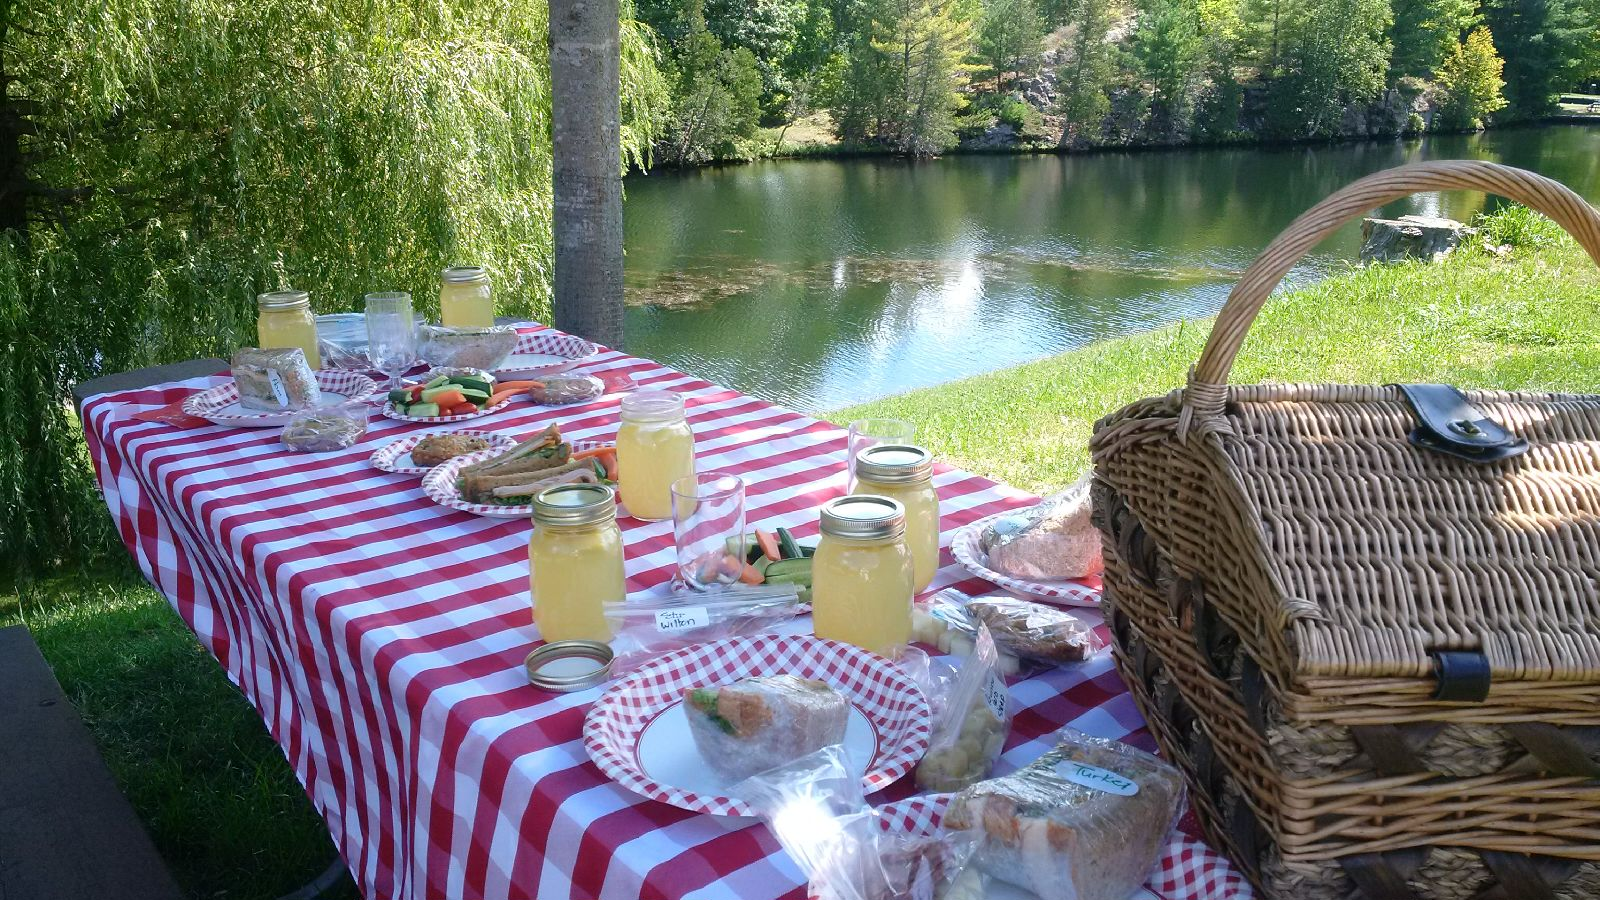 Image of a picnic set up.